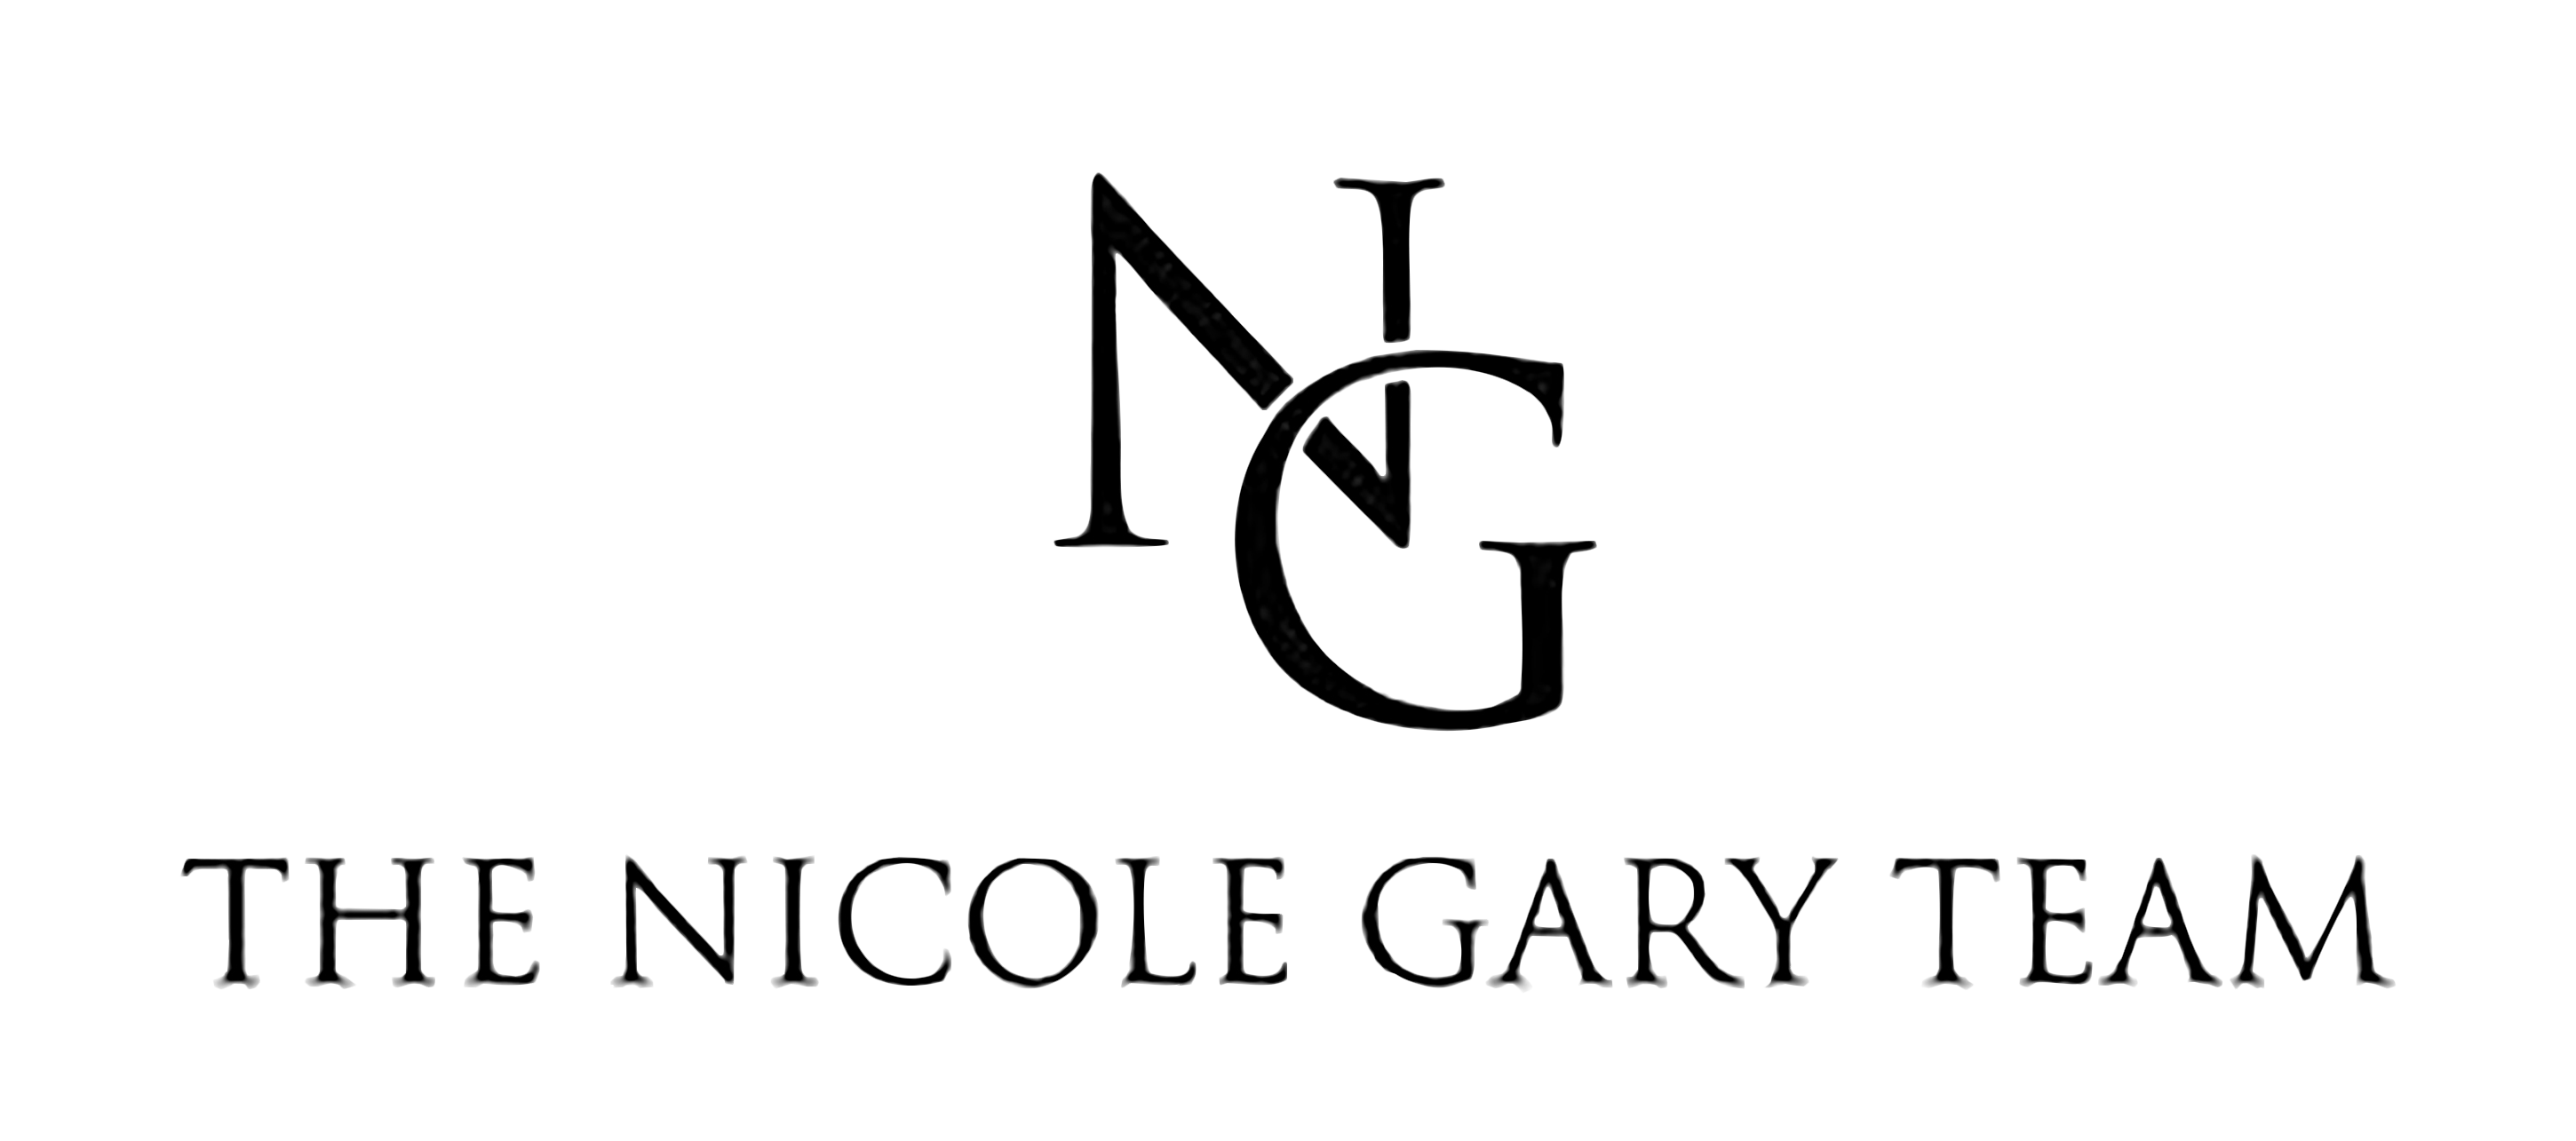 The Nicole Gary Team